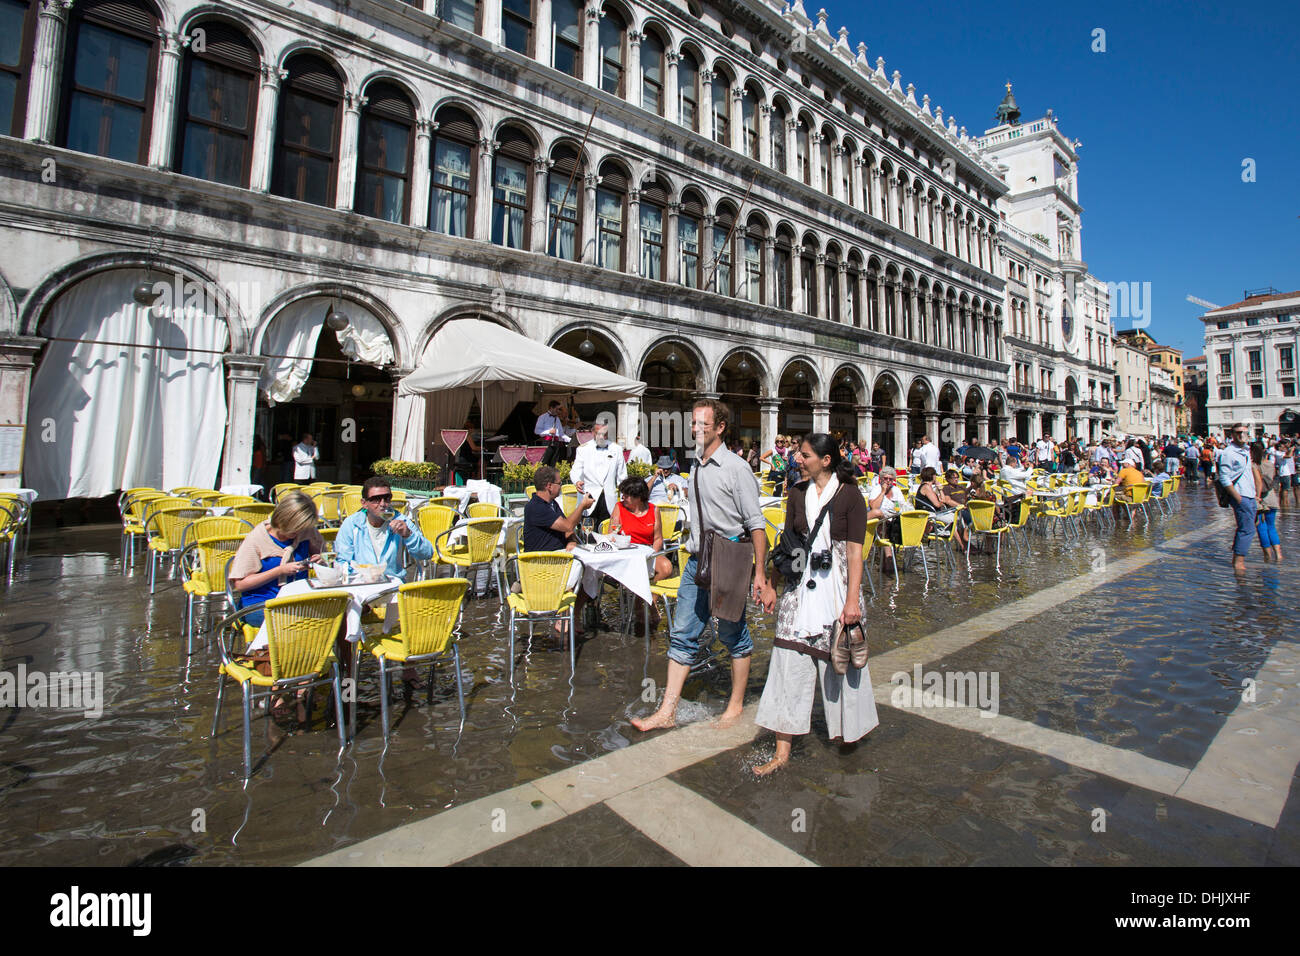 Young couple walking barefooted over flooded Piazza San Marco while people sitting outside of a cafe, Venice, Veneto, Italy, Eur - Stock Image